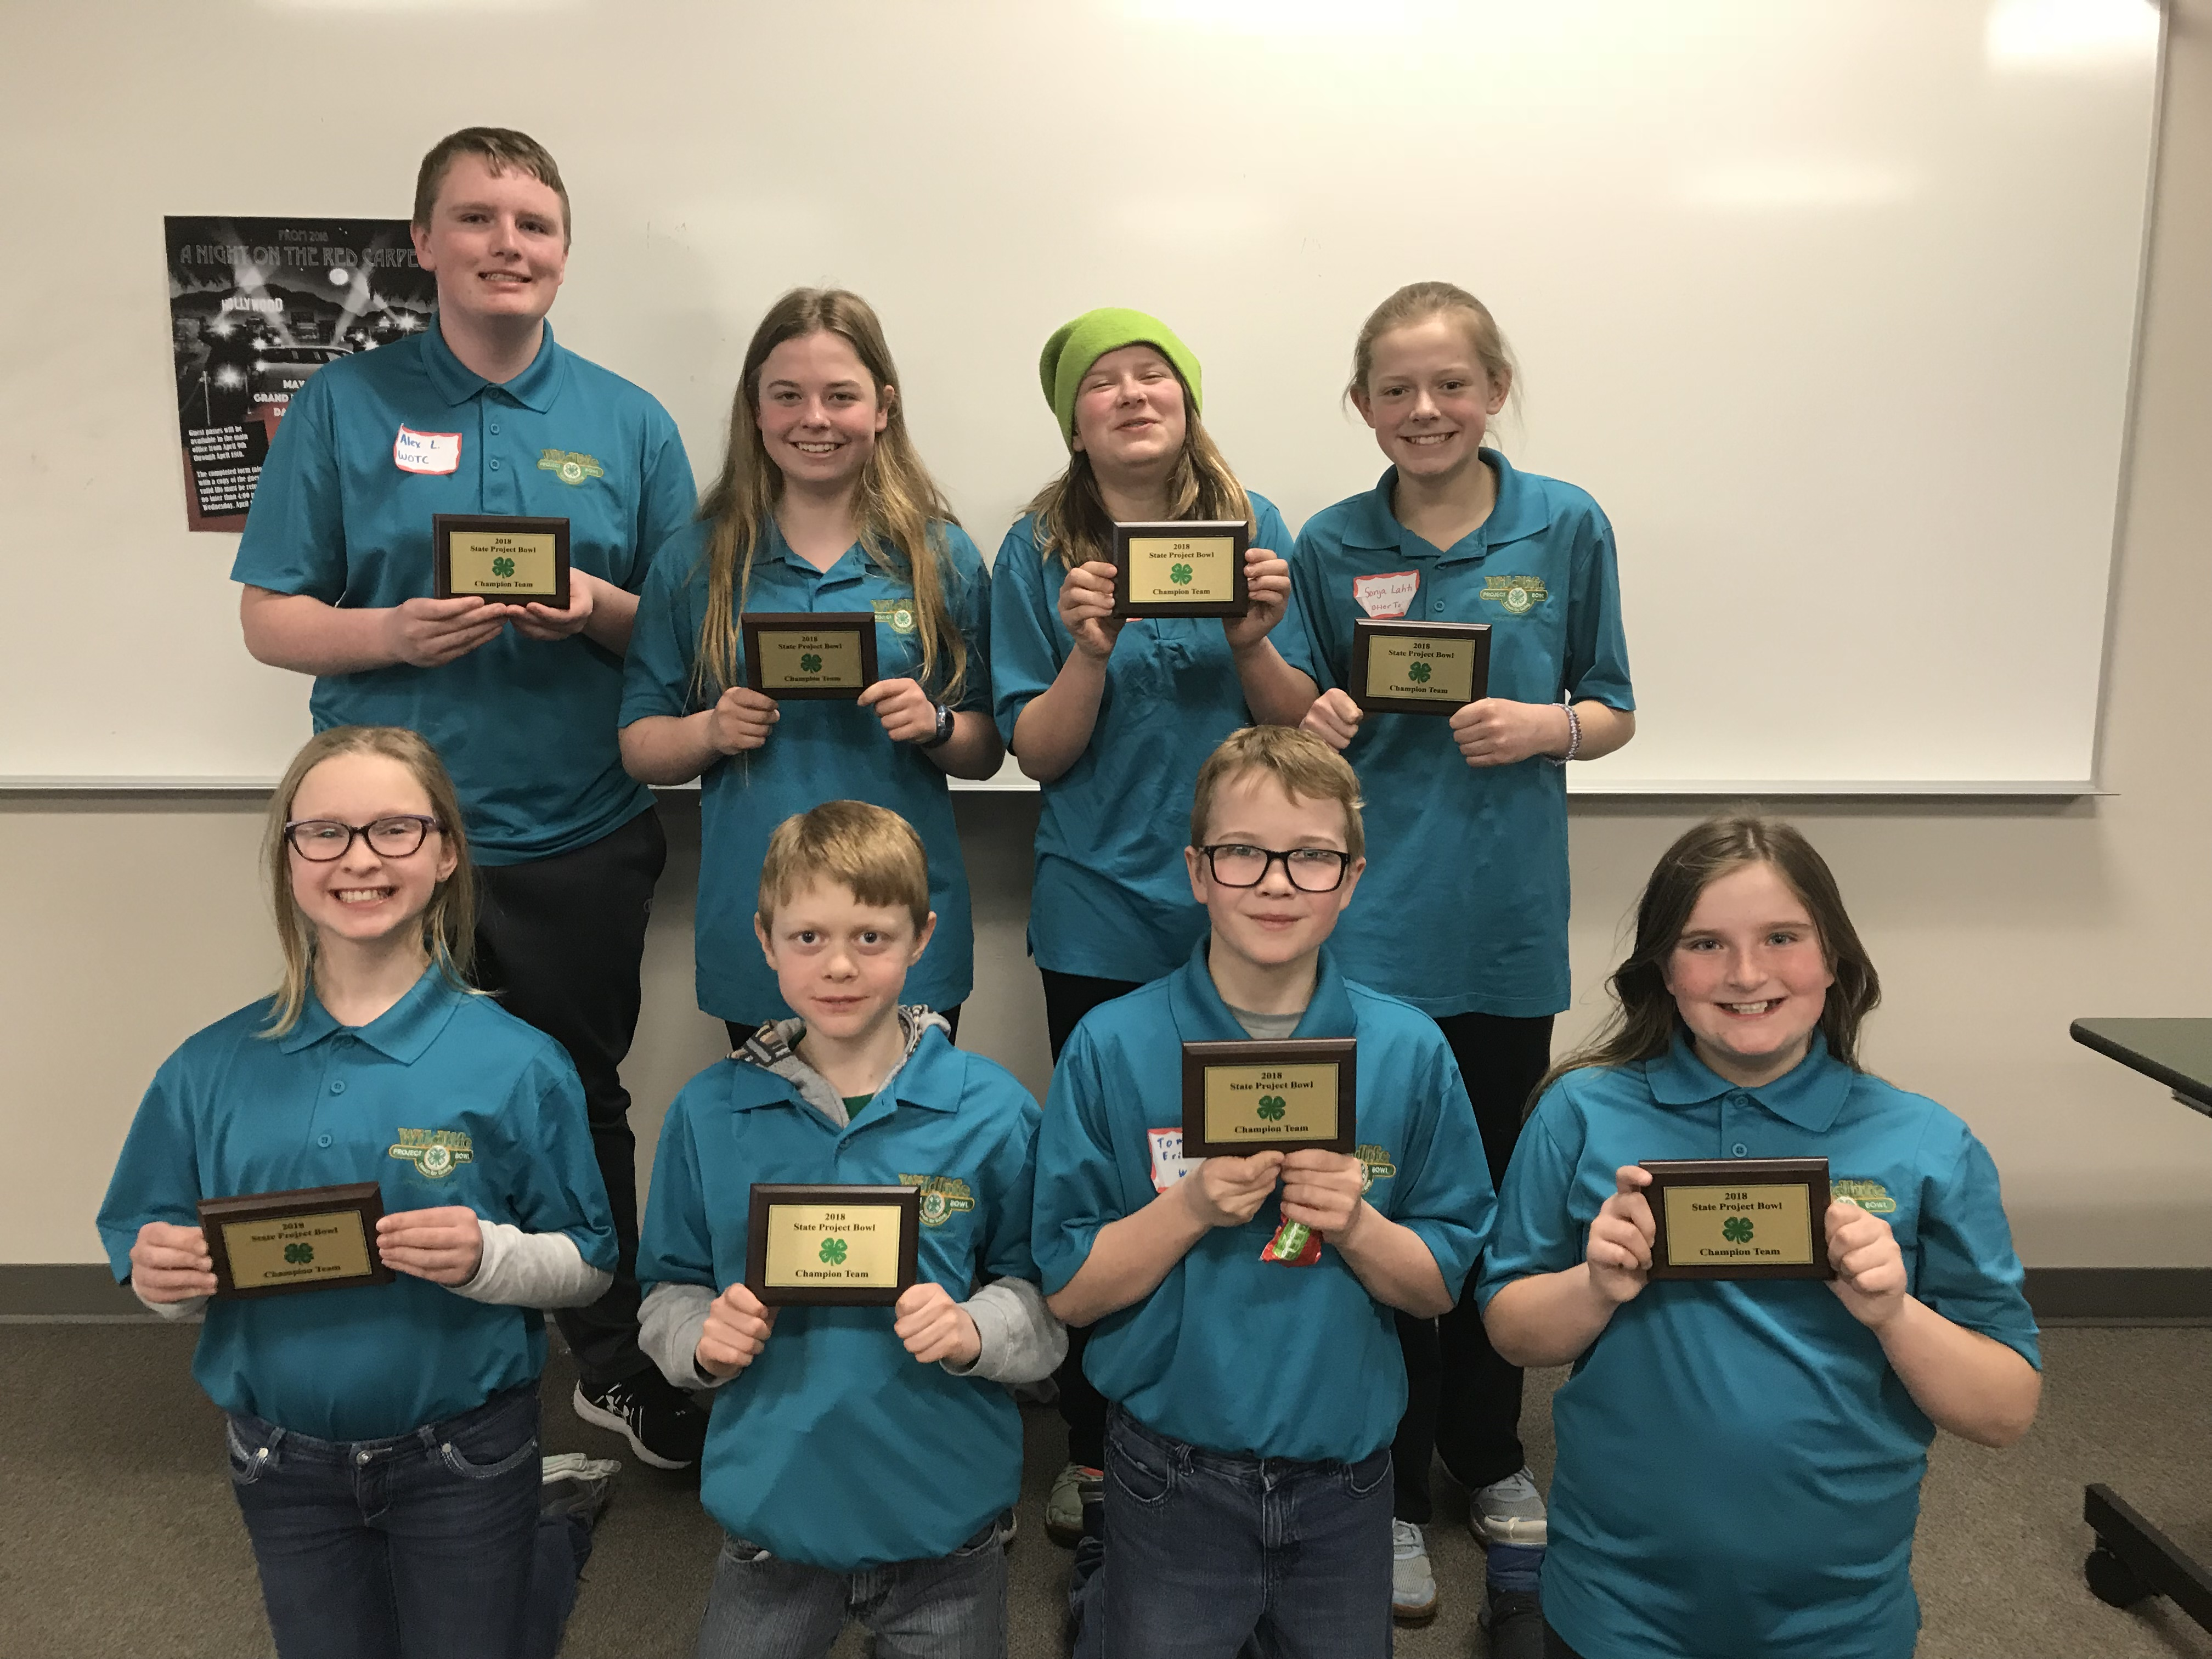 State 4-H Project Bowl Champions